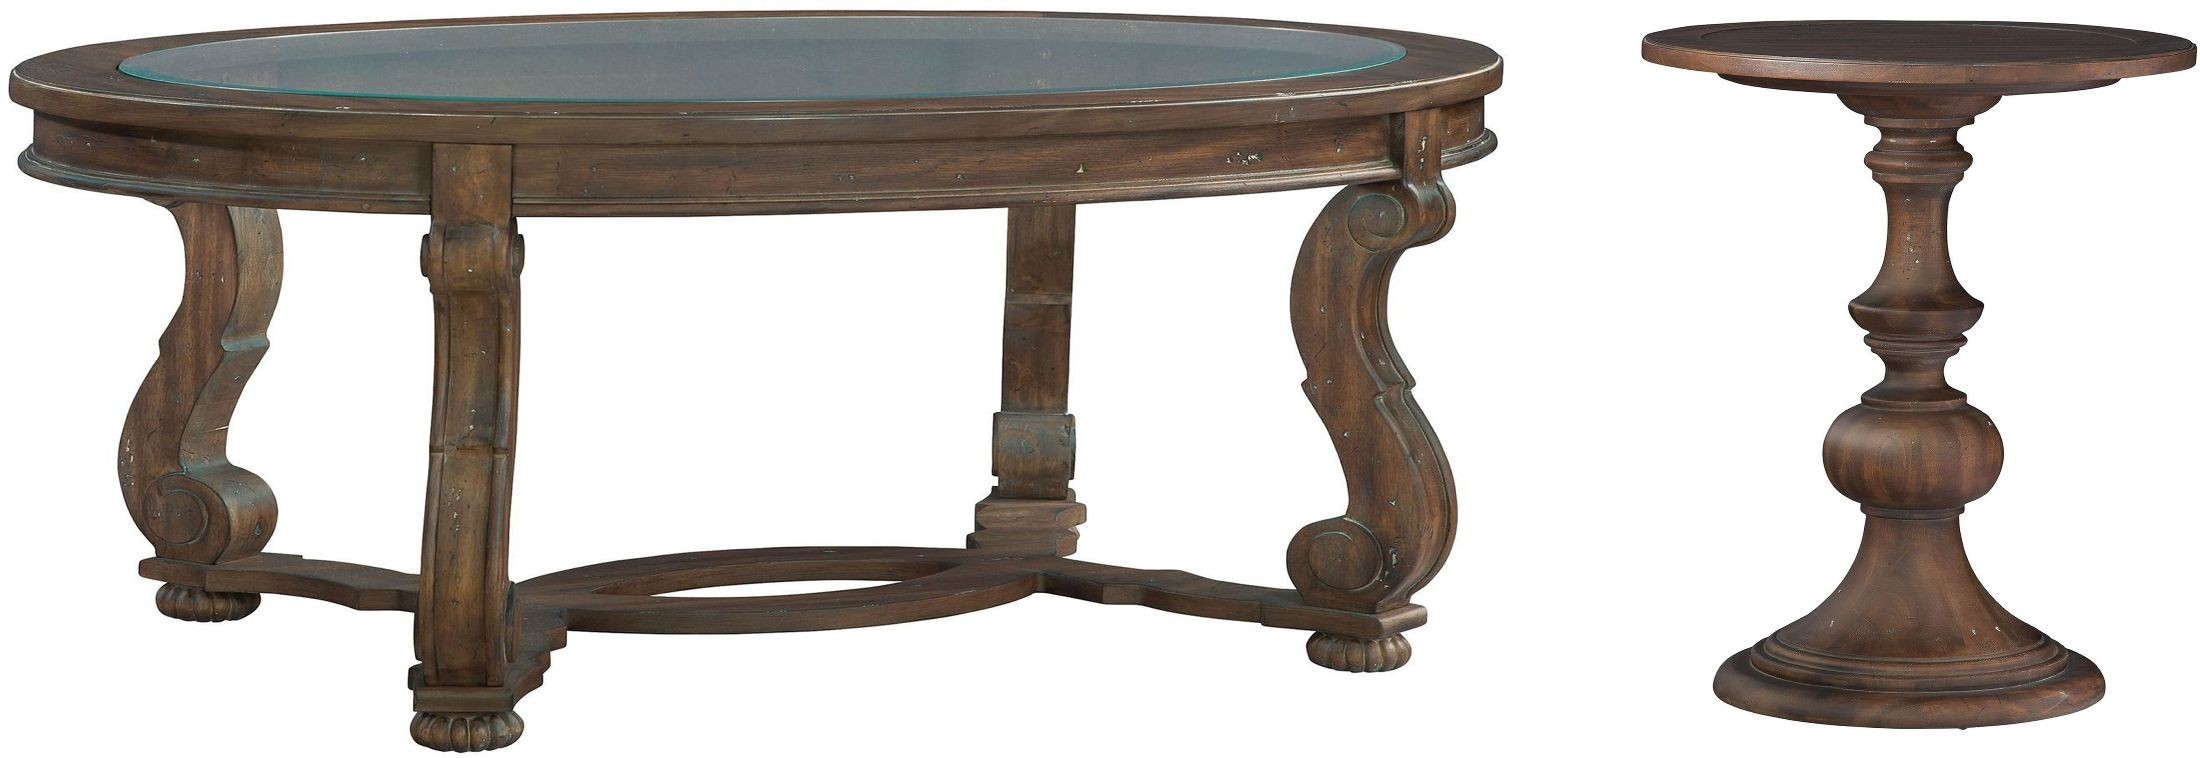 Napa valley brown oval glass top occasional table set from for Glass top occasional tables